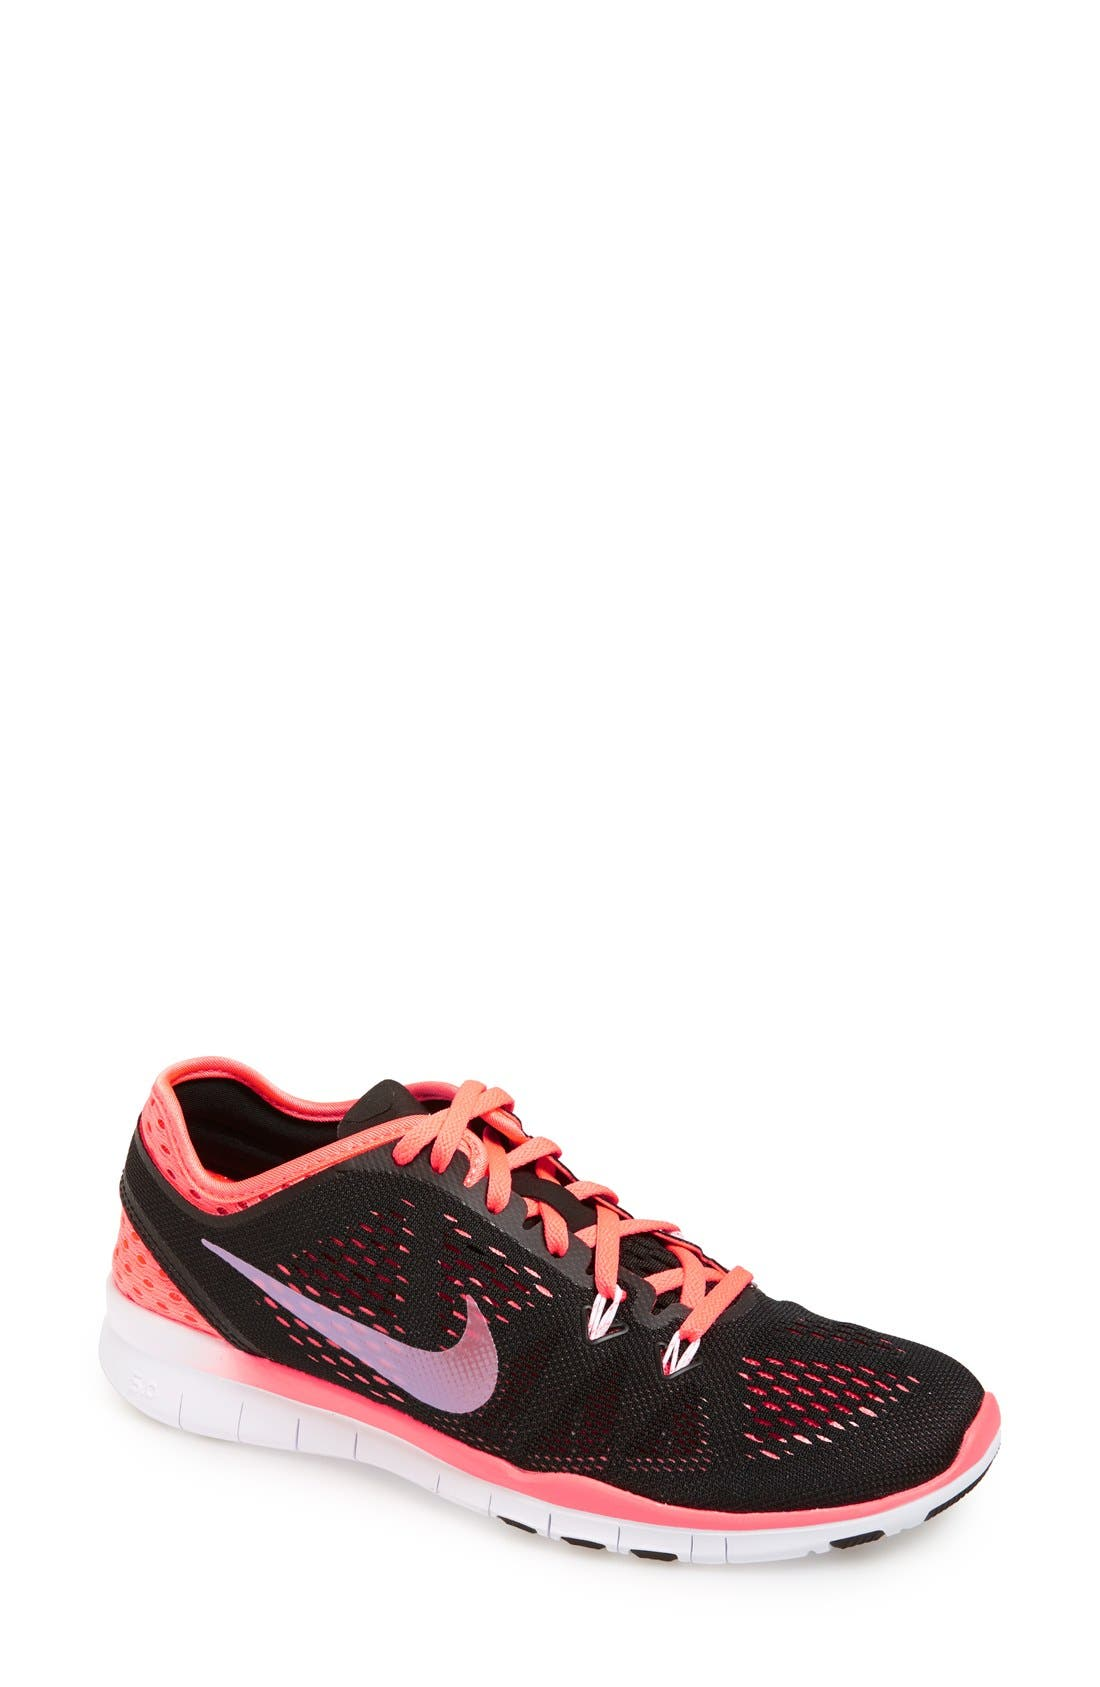 'Free 5.0 TR Fit 5 Breathe' Training Shoe,                             Main thumbnail 1, color,                             003